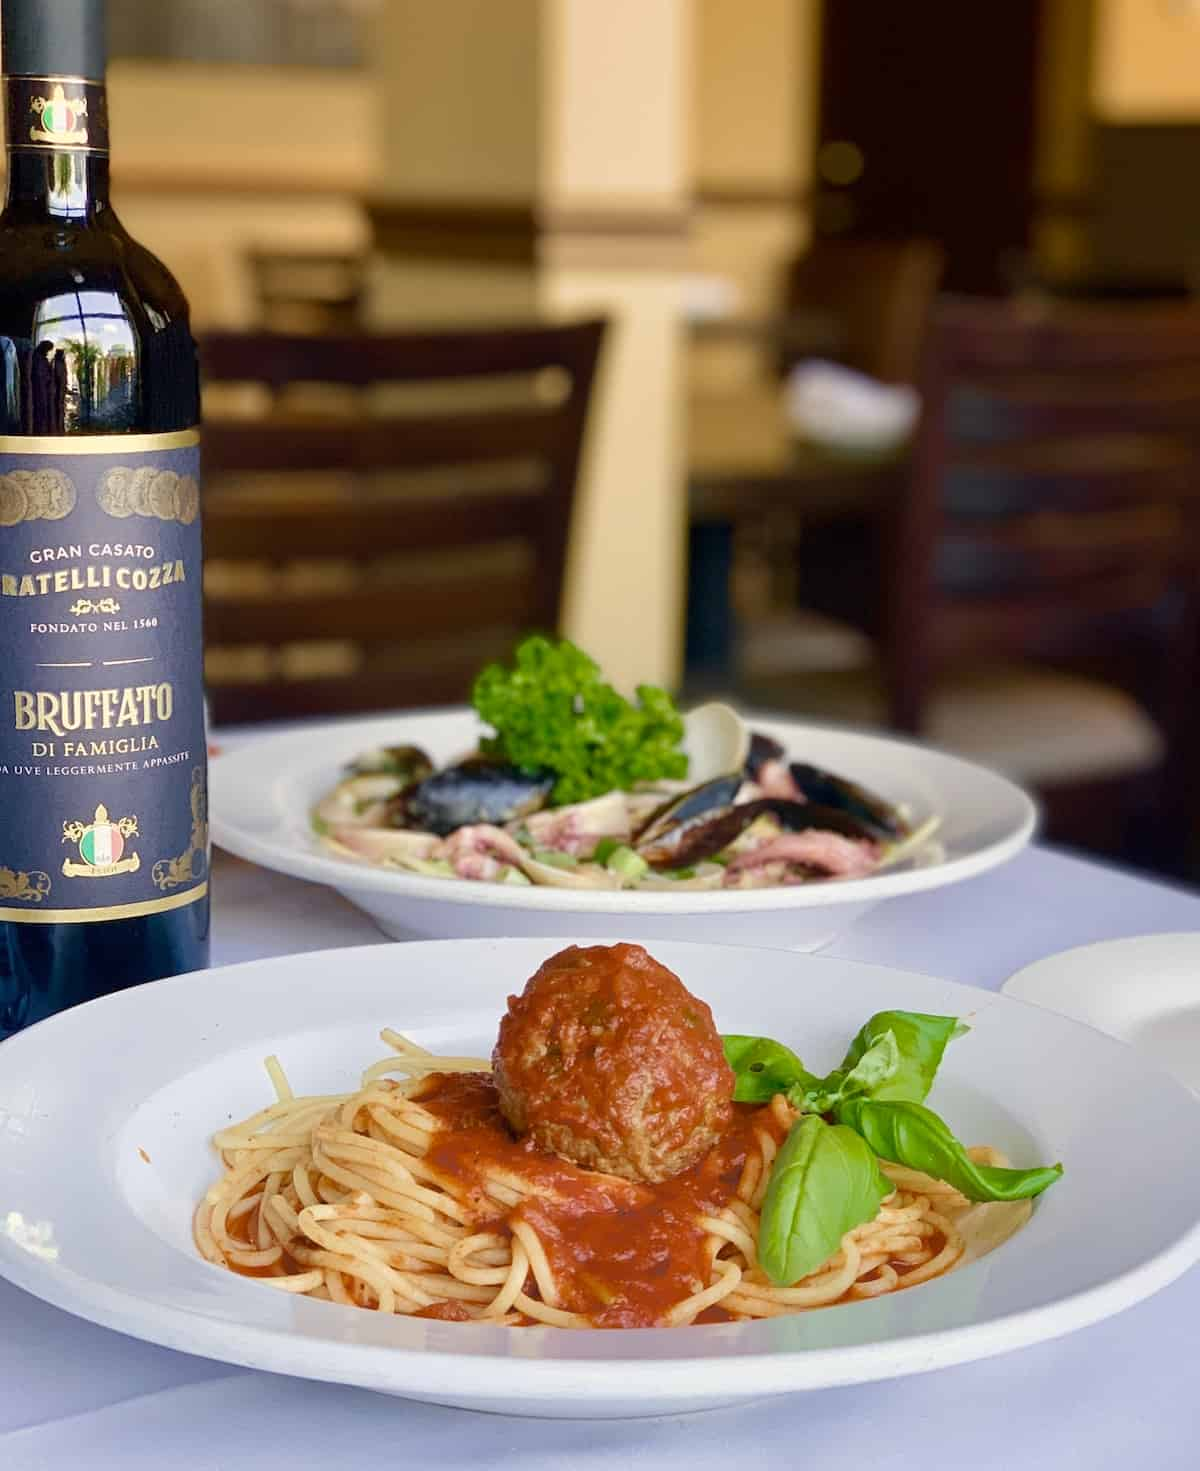 Spaghetti and meatballs, bottle of wine, seafood dish in background, all on white tabelcoth.